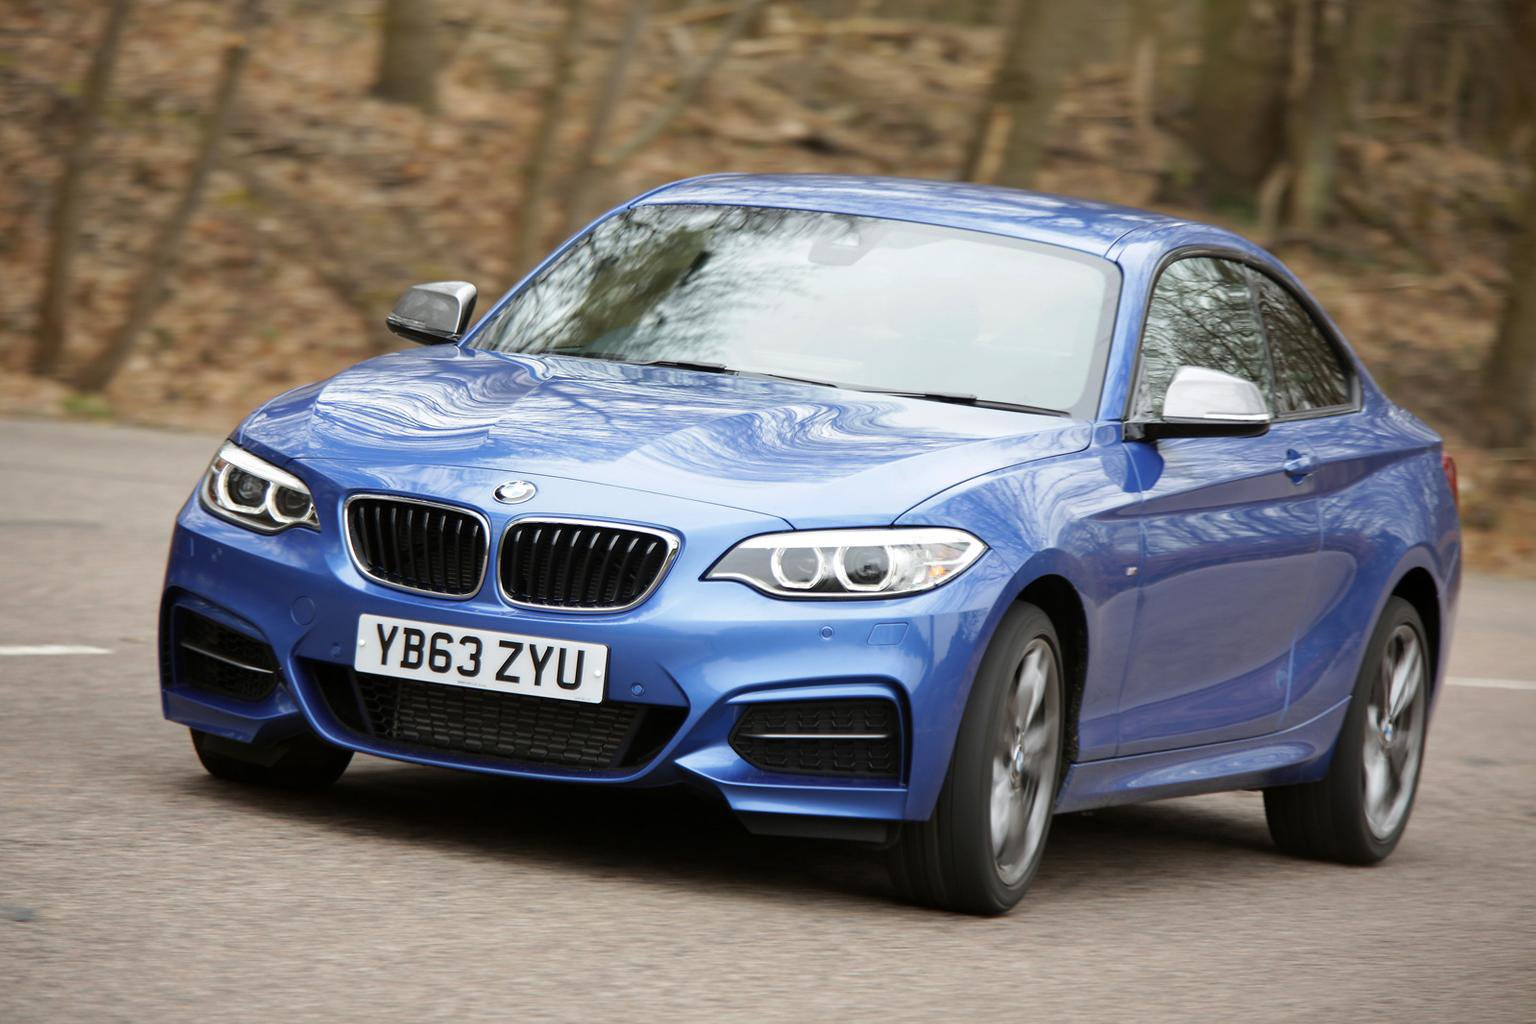 2014 BMW M235i review | What Car?